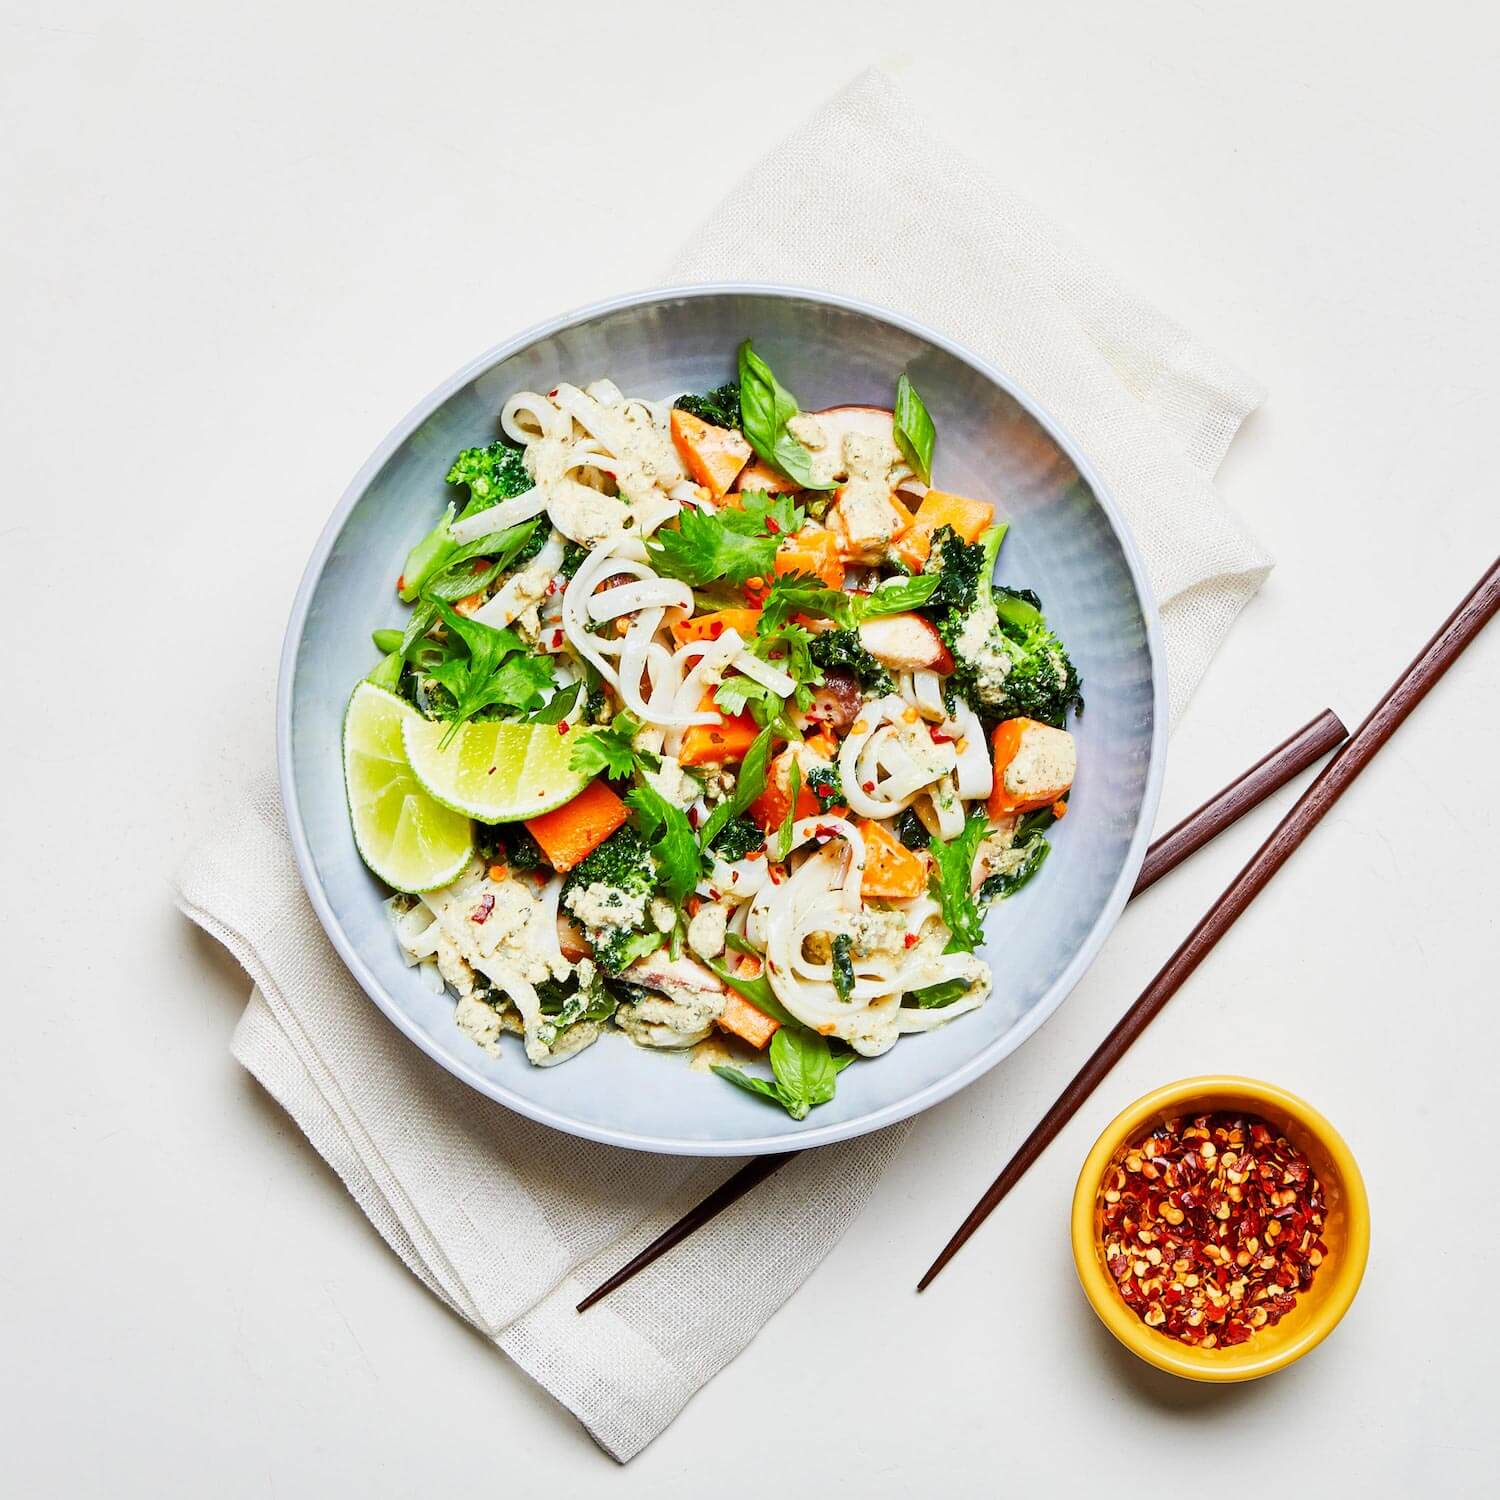 Green Curry in a dish with a napkin, chopsticks, and a dish of red pepper flakes on the table.